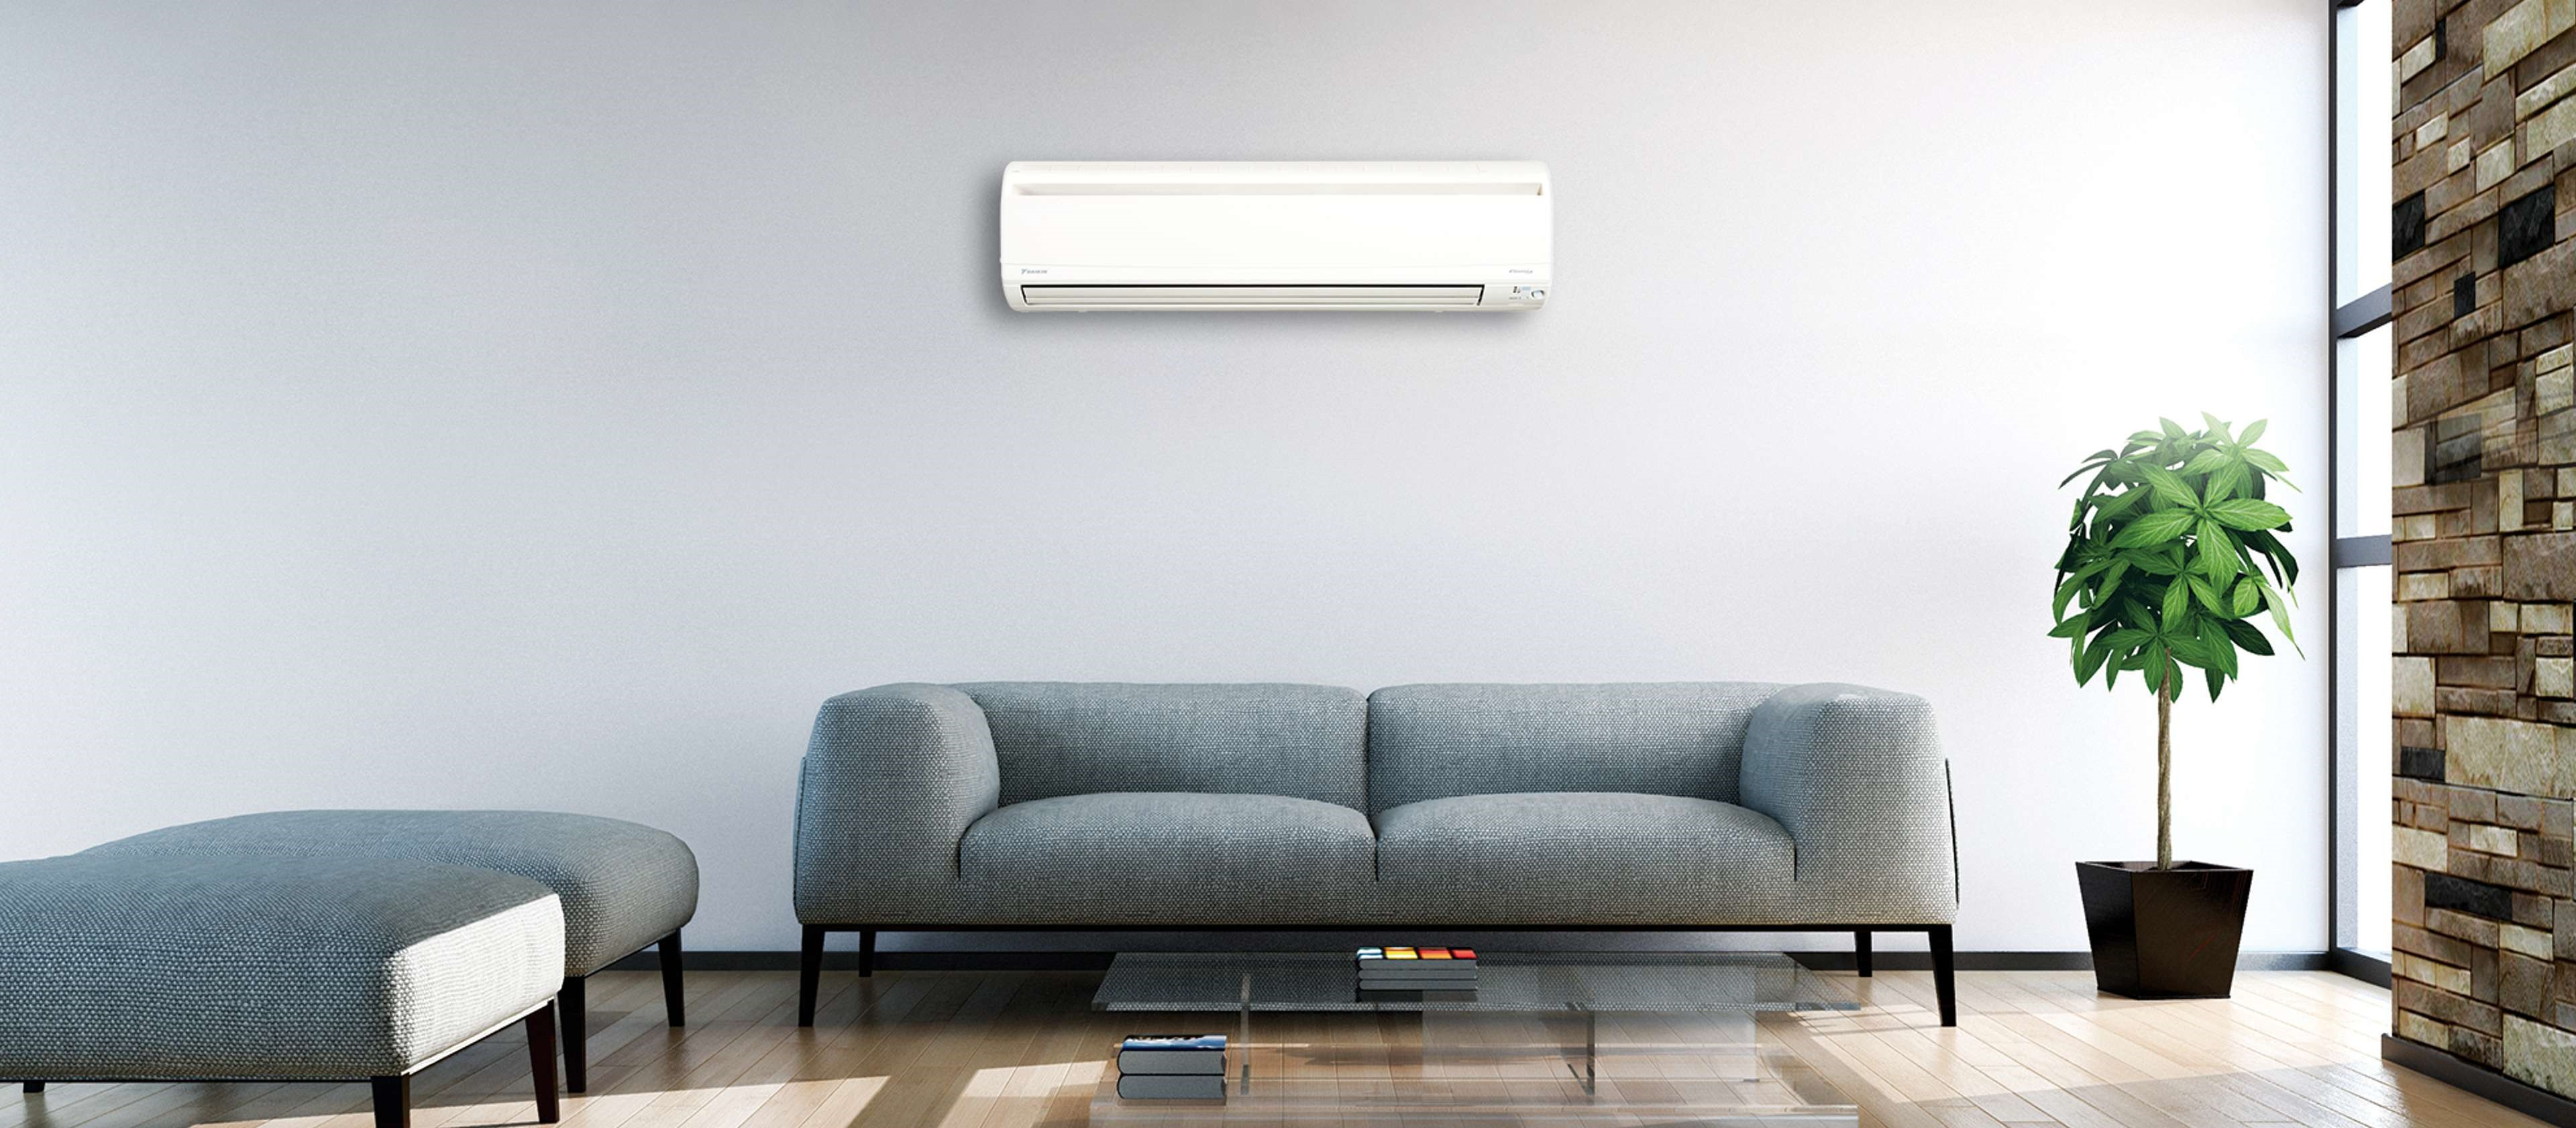 essential ac things setup look air for in system a blog new home smart conditioner interior pro shutterstock to